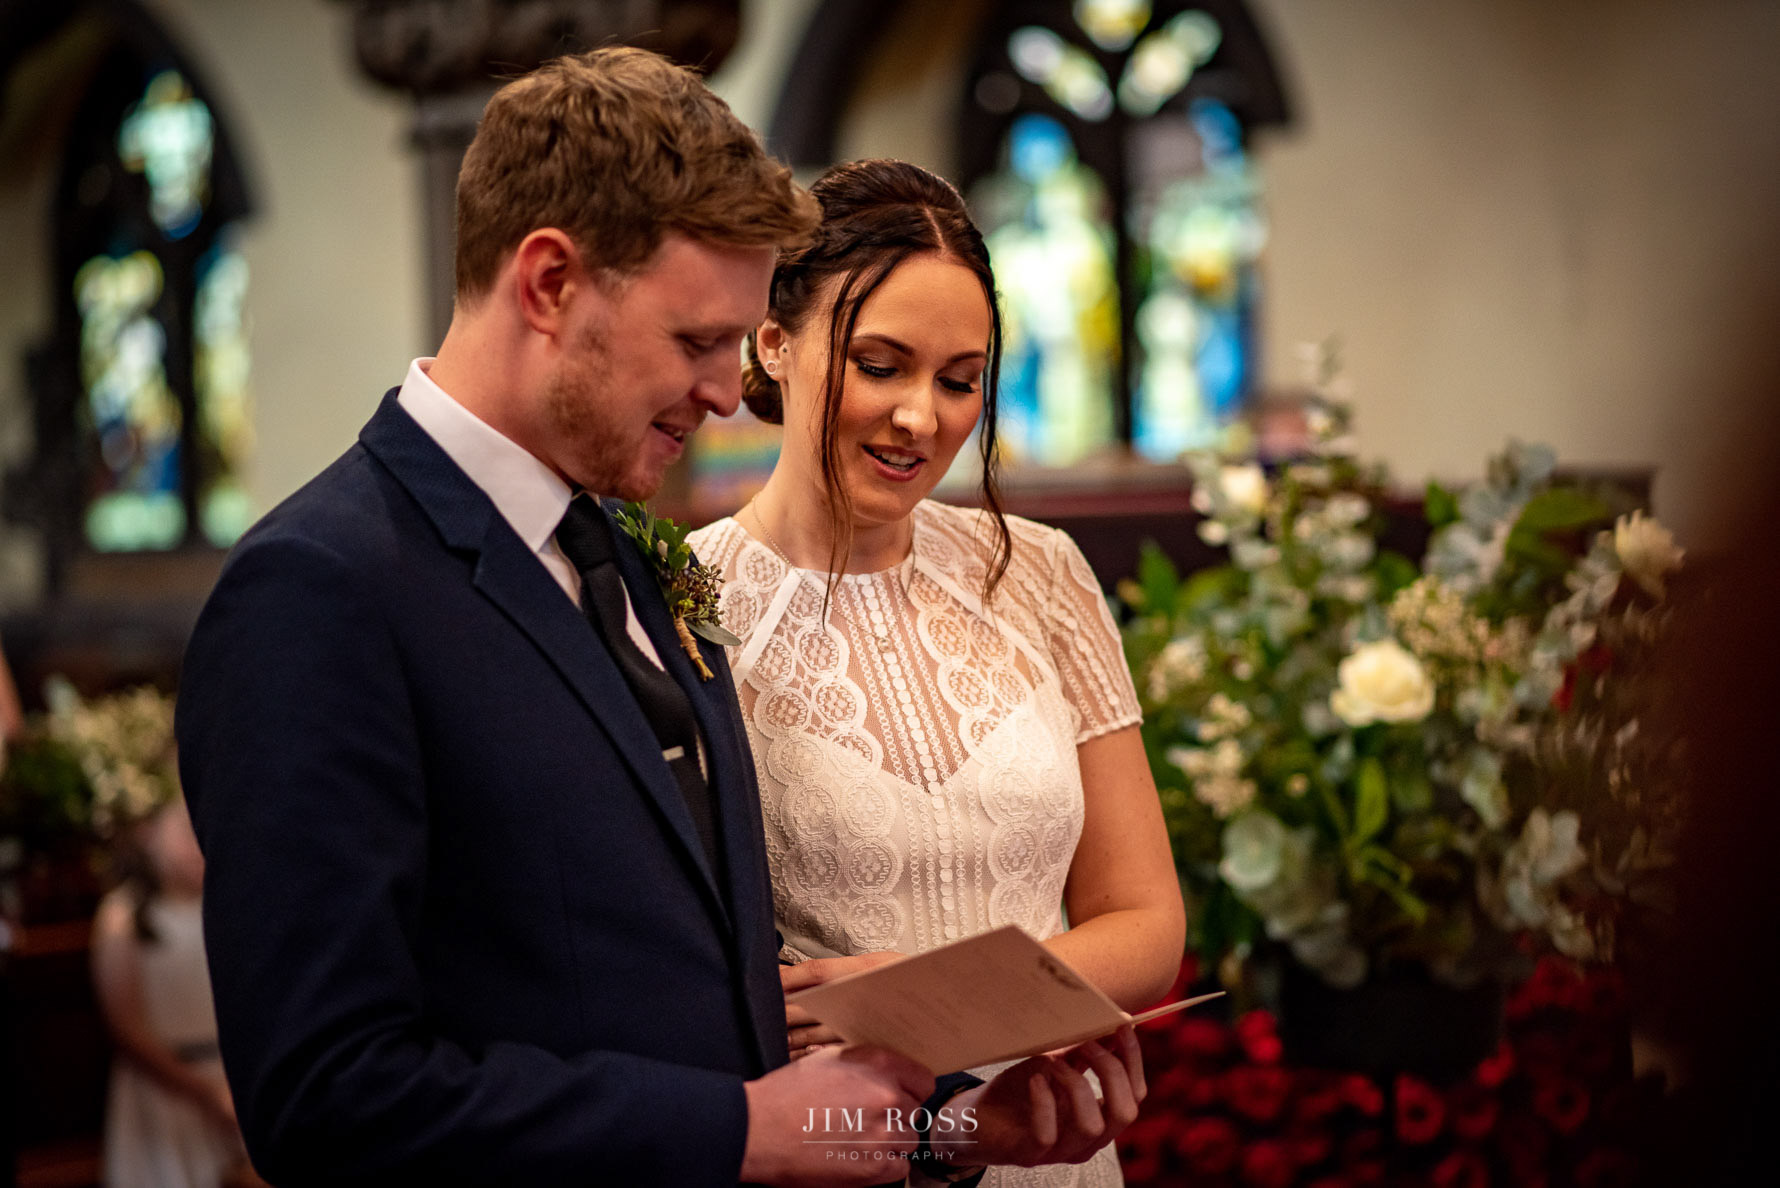 Songs and vows